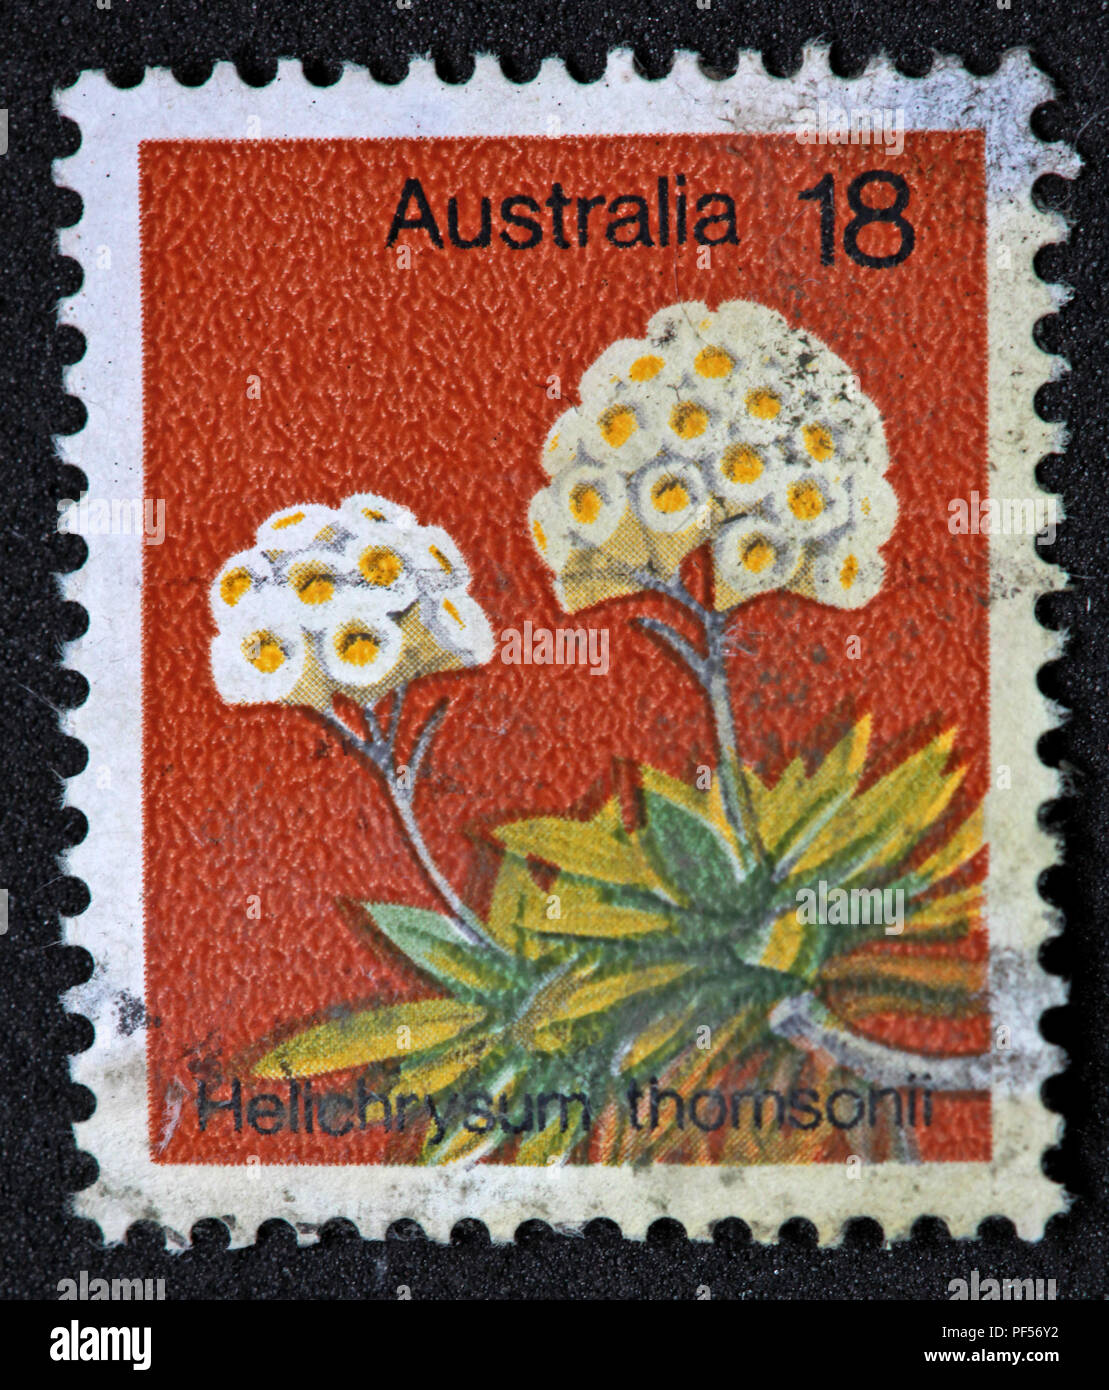 Gotonysmith,@Hotpixuk,Hotpixuk,rare old stamps,used stamps,Postal,letters,letter,communication,print,analogue,historic stamps,Helichrysum Thomsonii plant,flower,Helichrysum Thomsonii flower,Helichrysum,Thomsonii,Australian stamp,used Australian stamp,Australian postage stamp,used Australian postage stamp